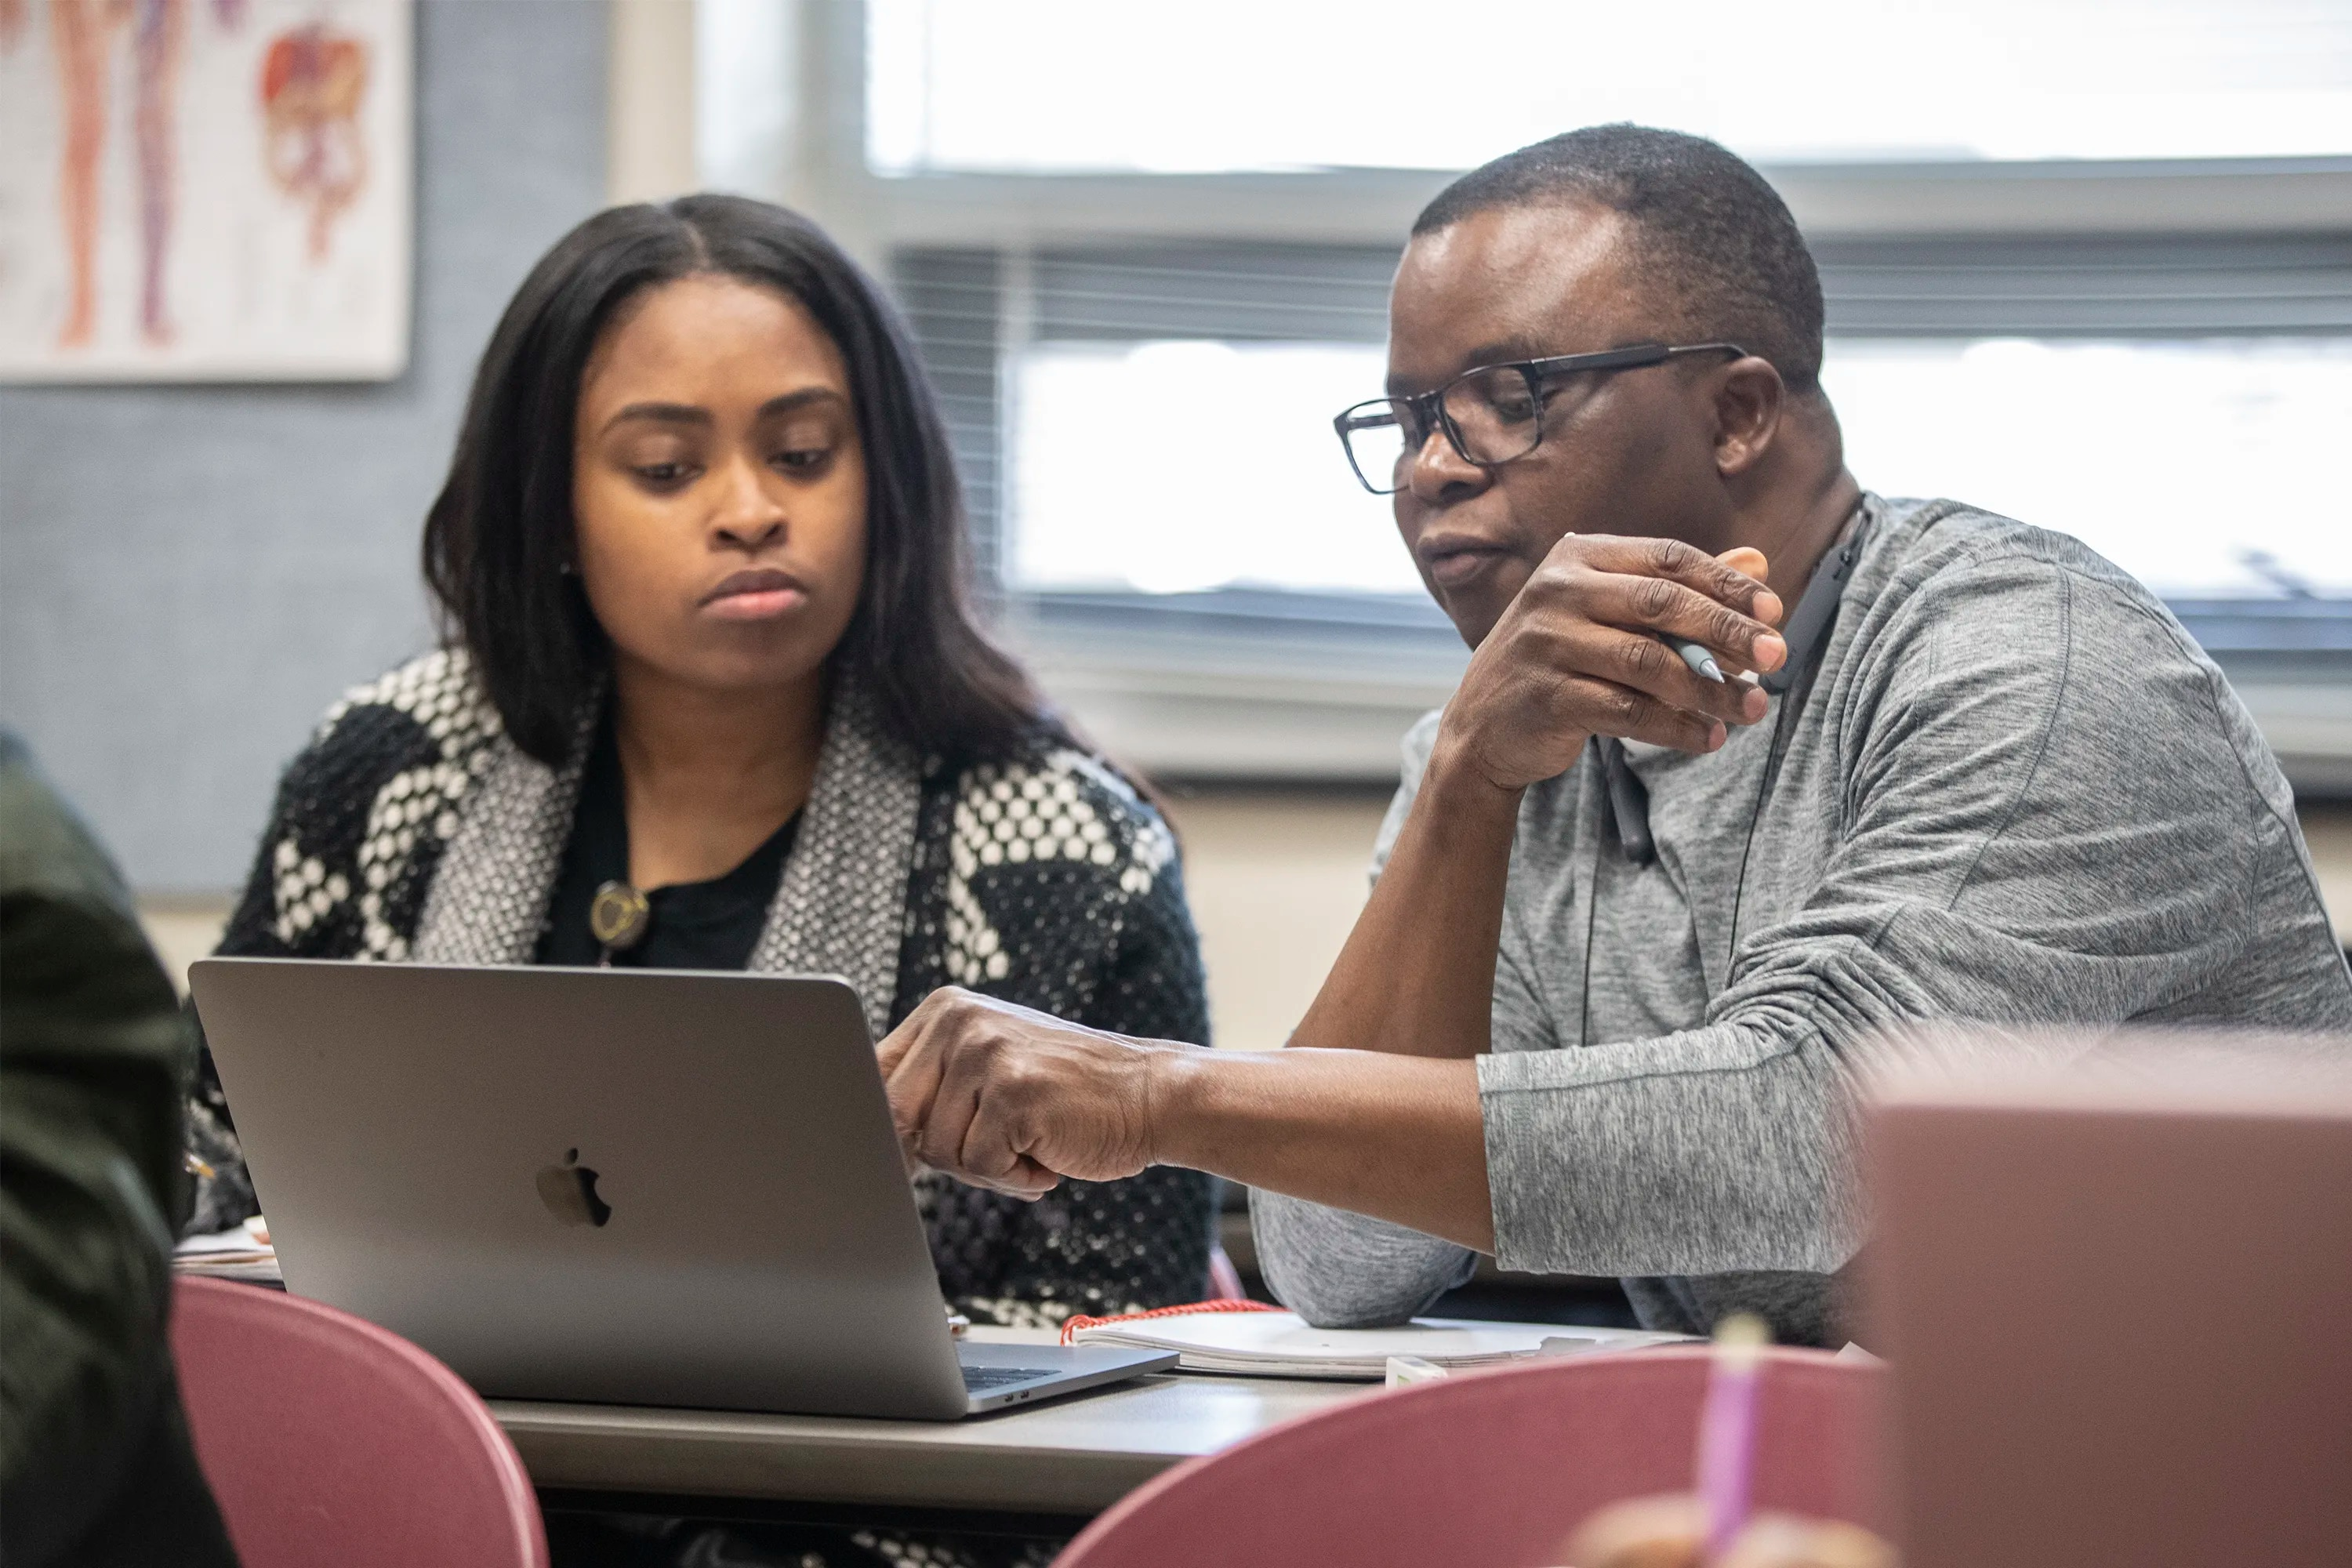 Level 1 nursing students, Kiara Boyd, left, and Olu Atilade, right, work together to complete their class assignment at the one-year nursing school at Eastern Center for Arts and Technology on January 16, 2020.